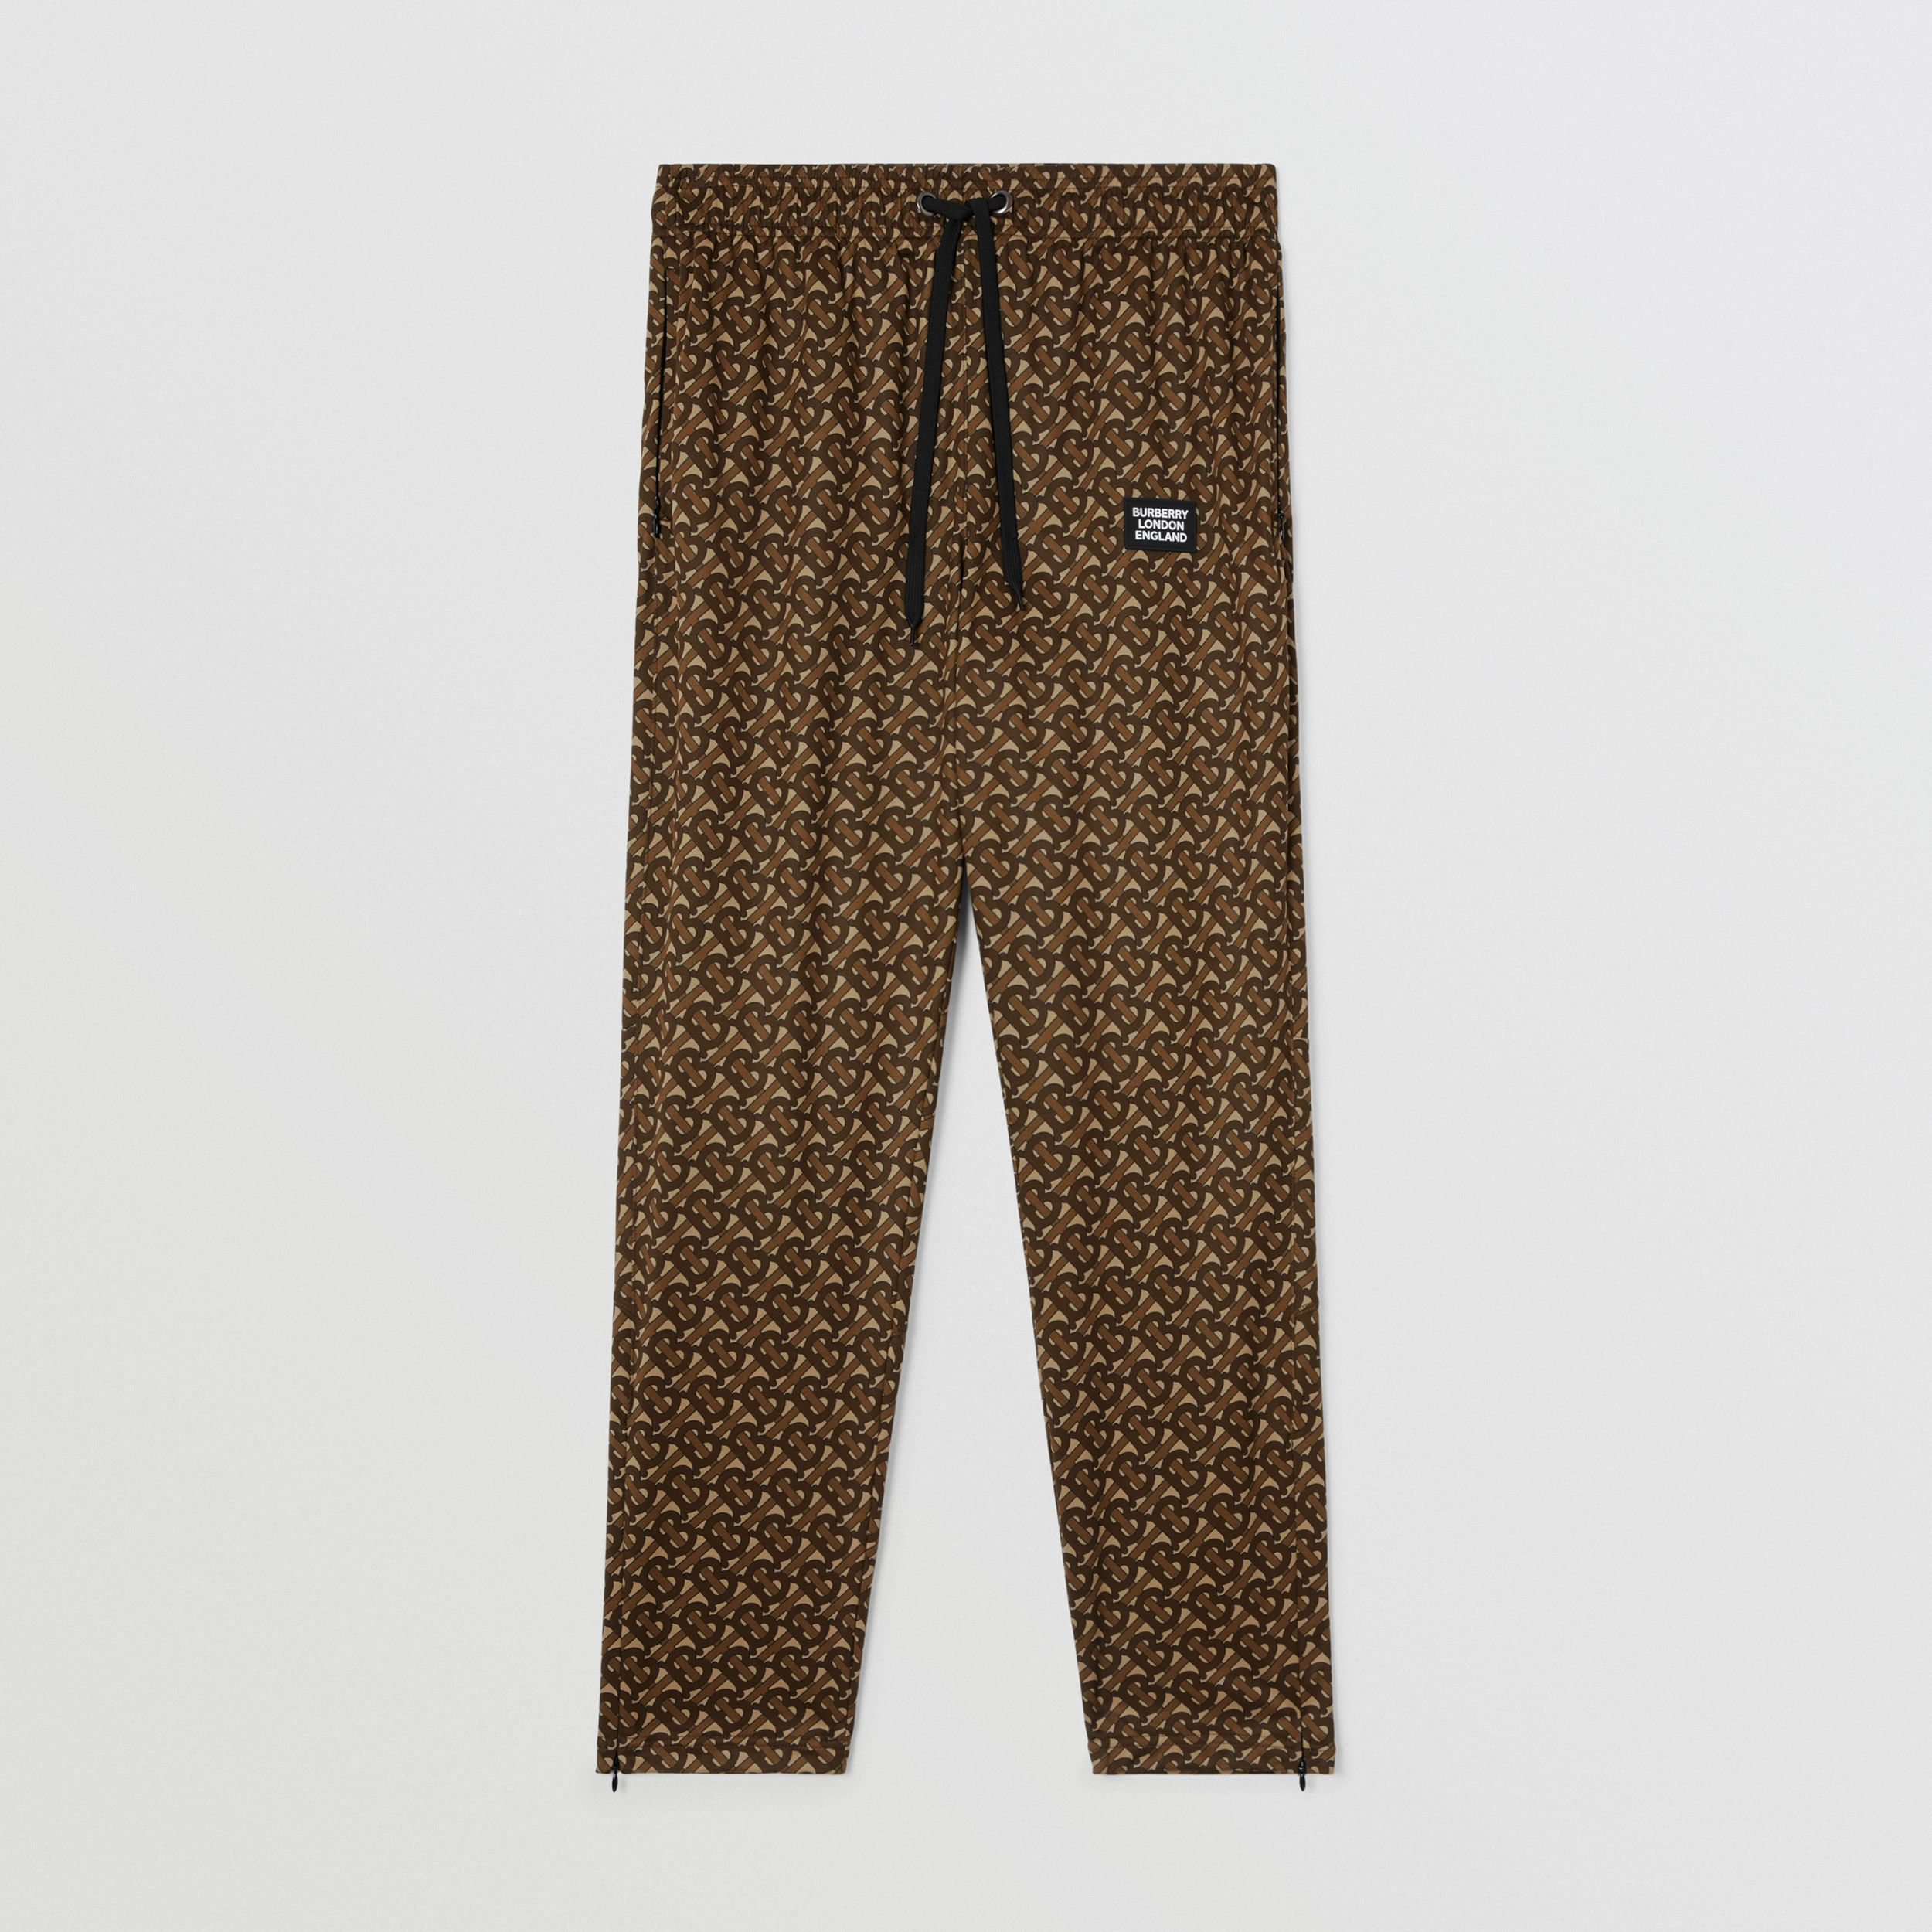 Monogram Print Technical Twill Jogging Pants in Bridle Brown - Men | Burberry - 4